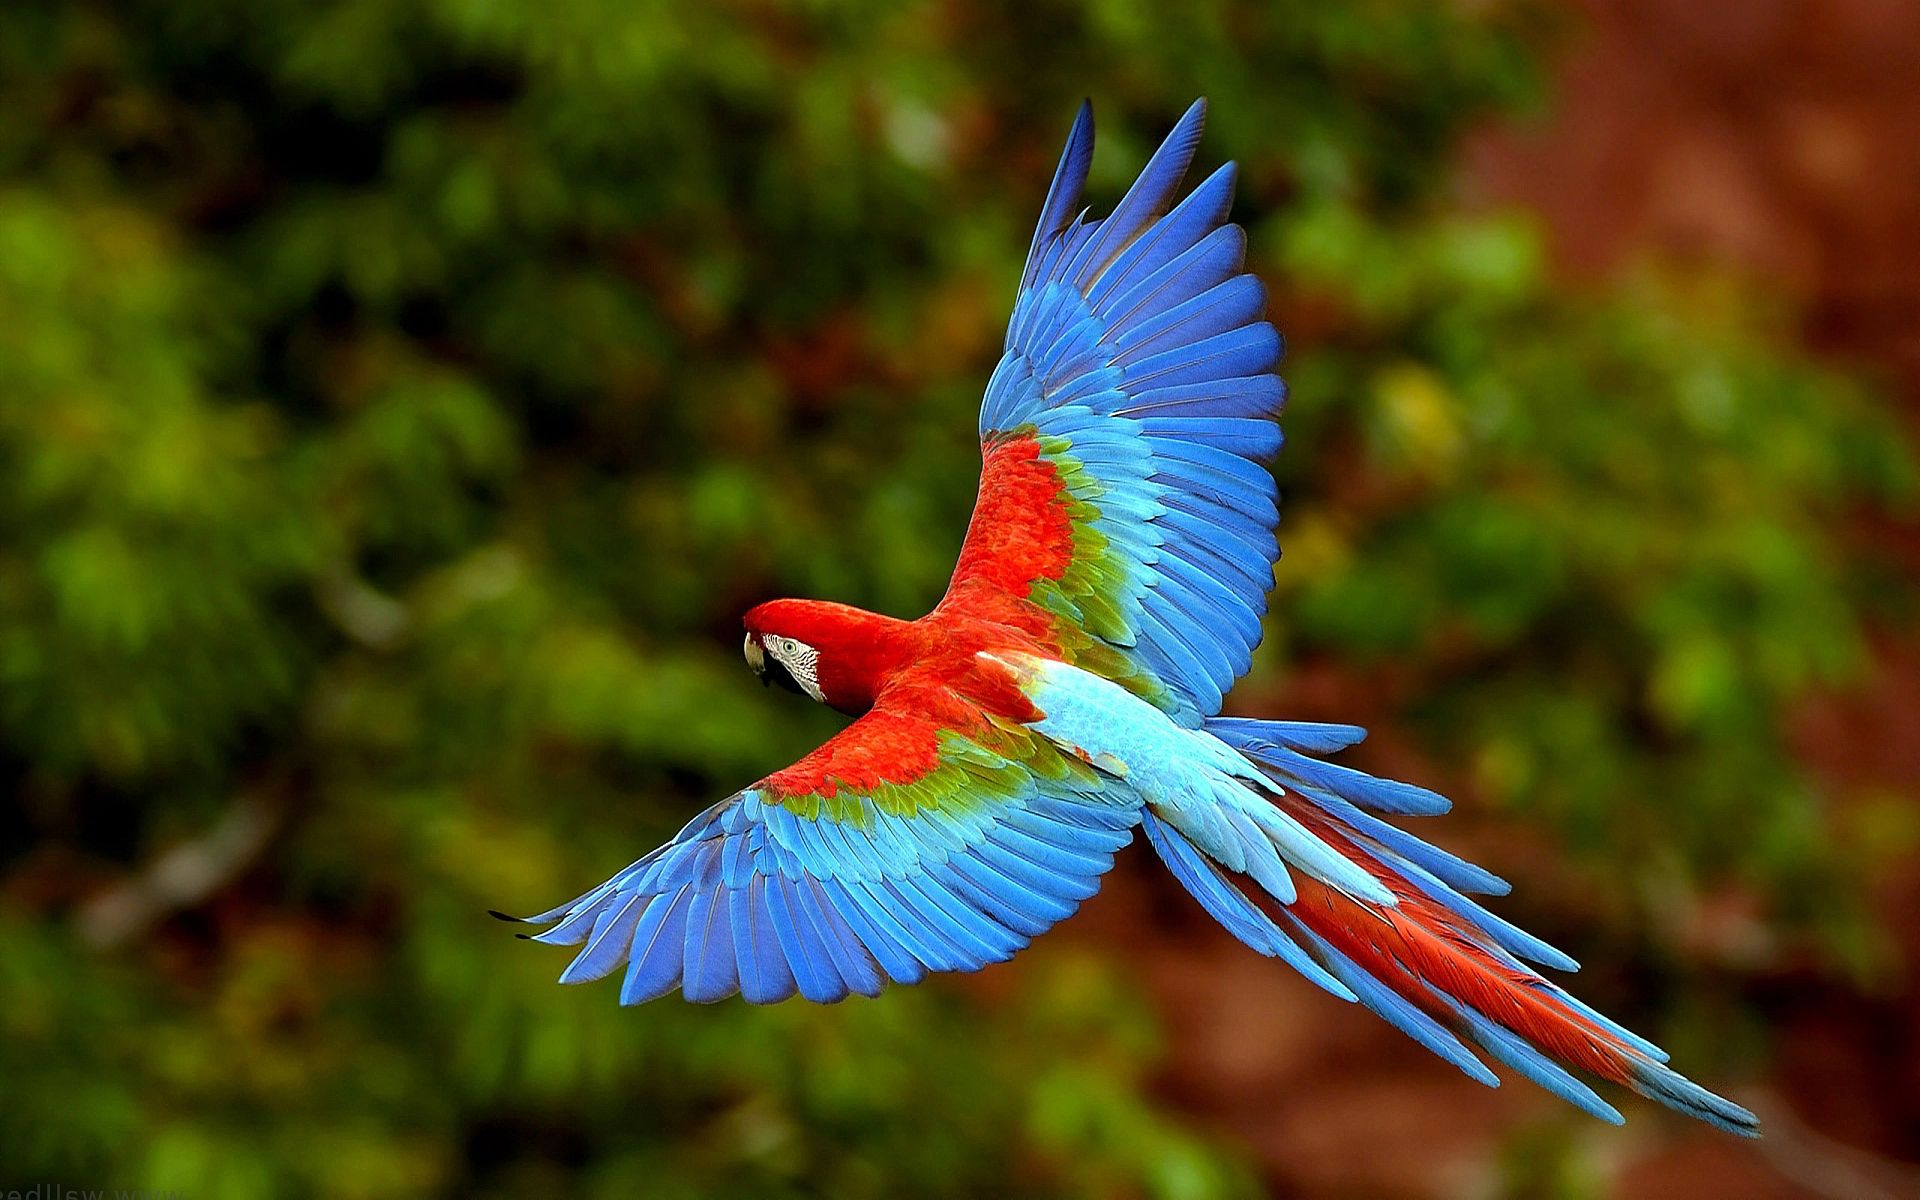 flying macaw | flying parrot wallpapers pictures photos images